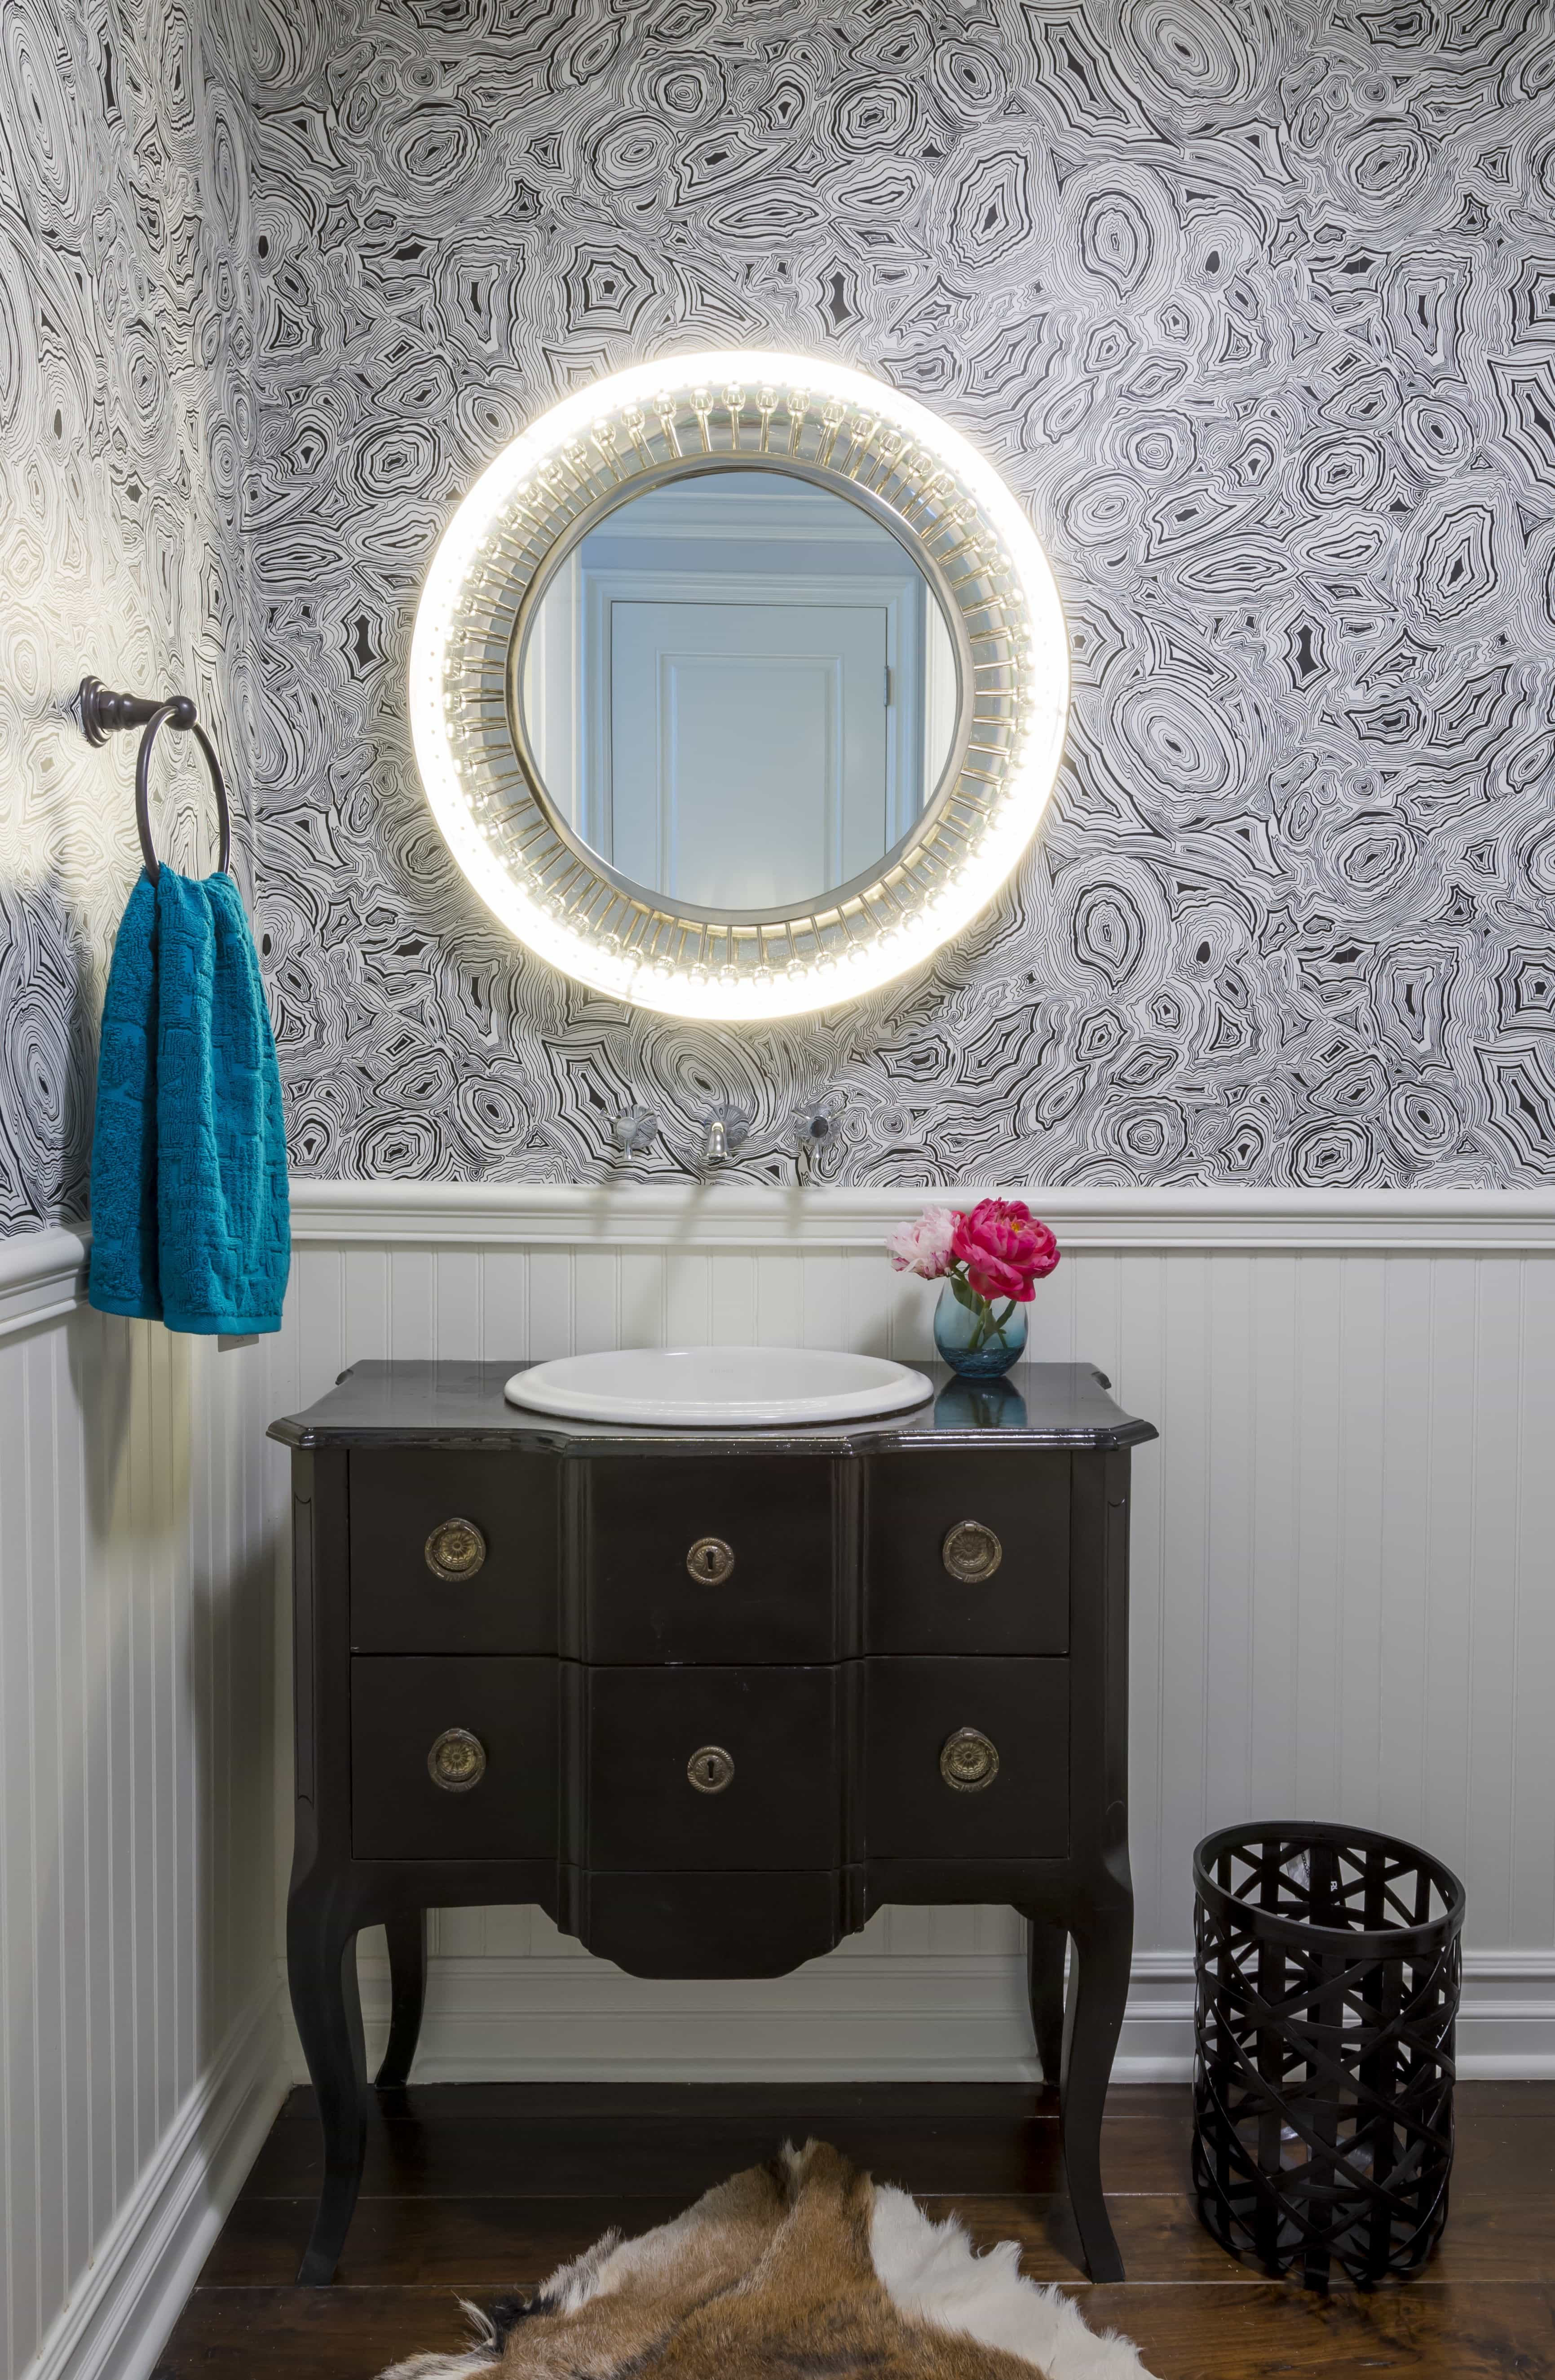 Small Rounded Illuminated Vanity Mirror And Wall Mounted Faucet (Image 8 of 8)